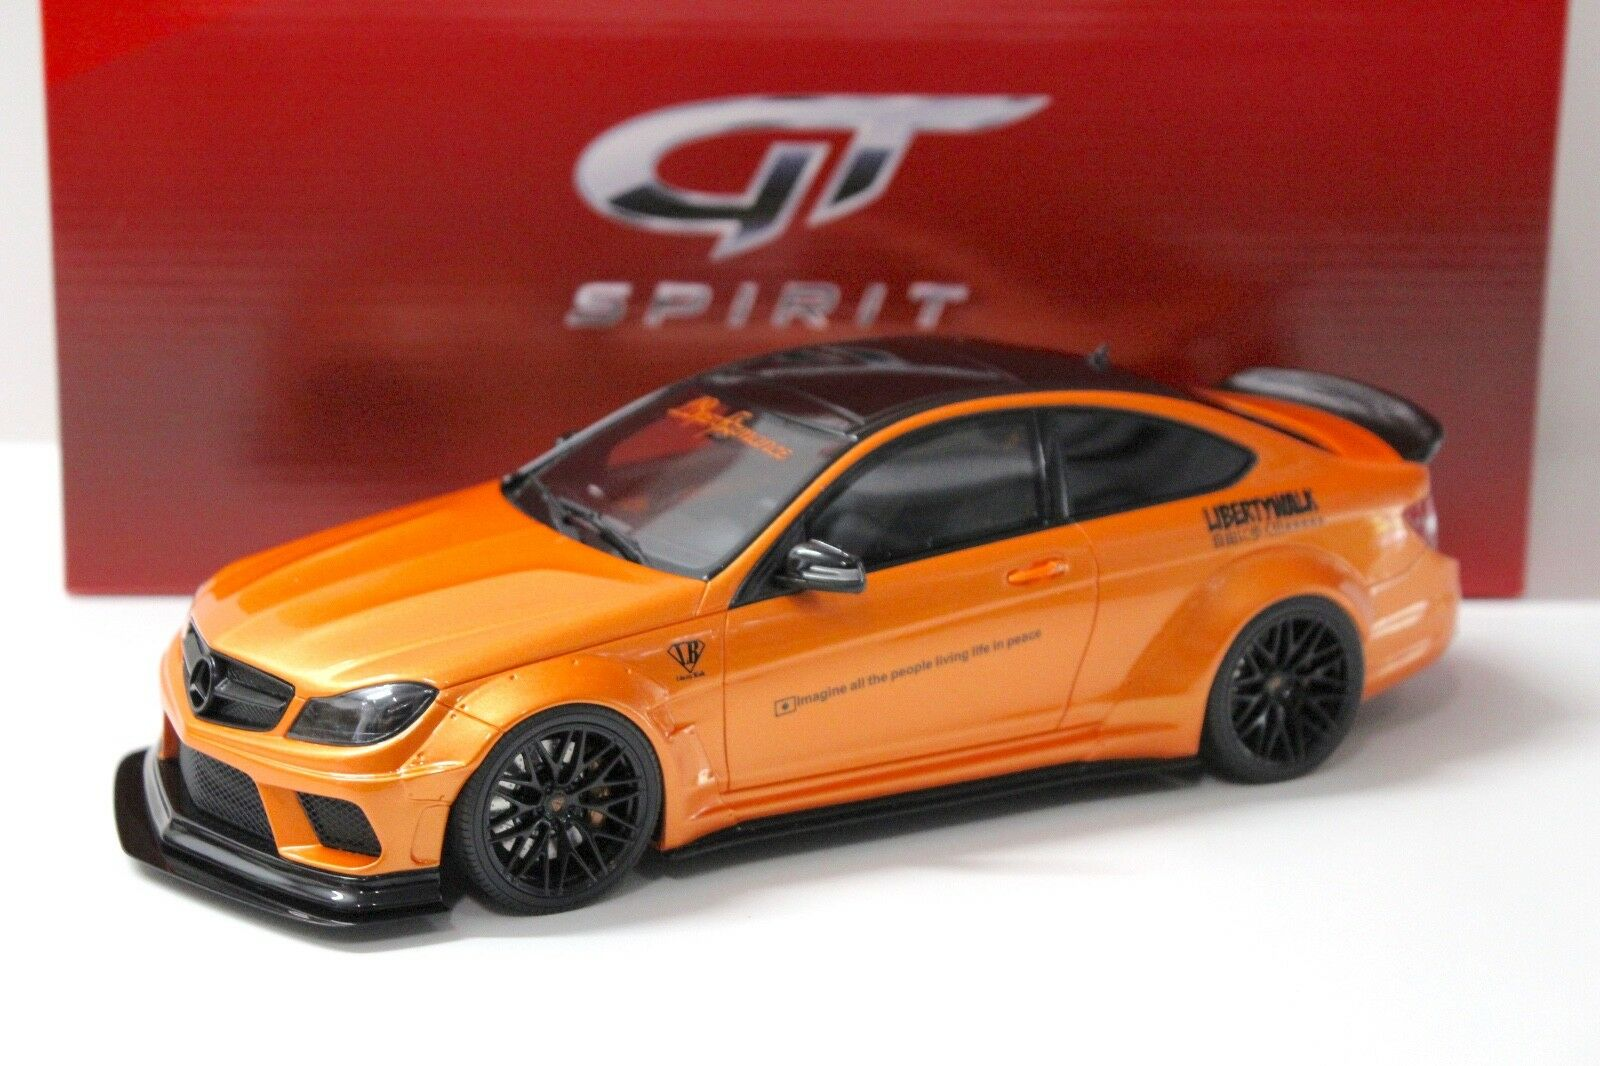 1:18 GT Spirit Mercedes c63 c63 c63 AMG LB Liberty Walk Orange New chez Premium-modelcars | D'adopter La Technologie De Pointe